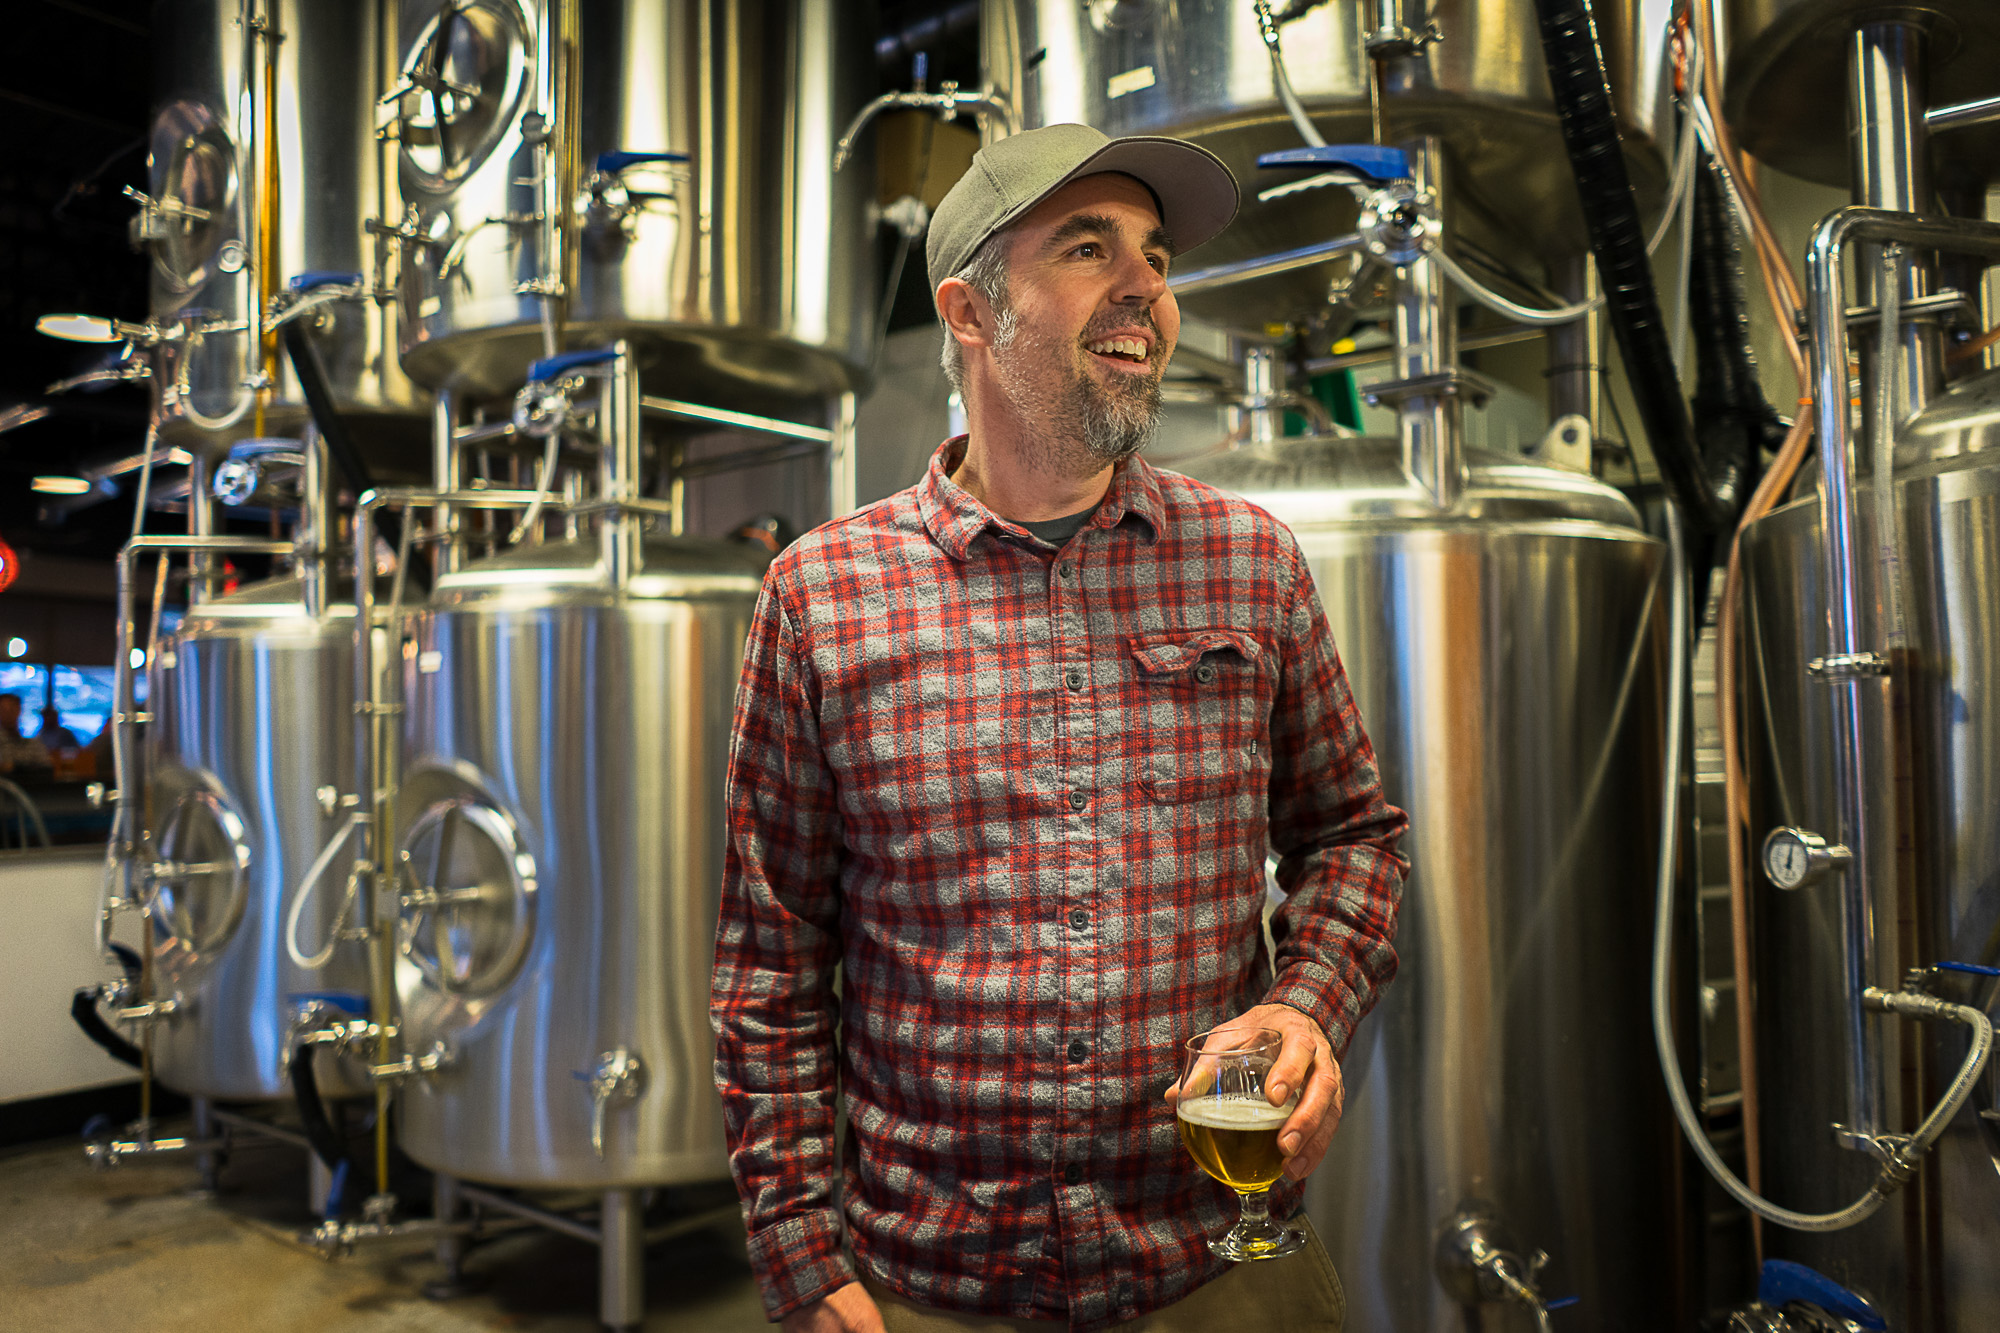 The owner of Cannonball Creek Brewing in Denver, Colorado stands holding his beer for Dirt Road Travels